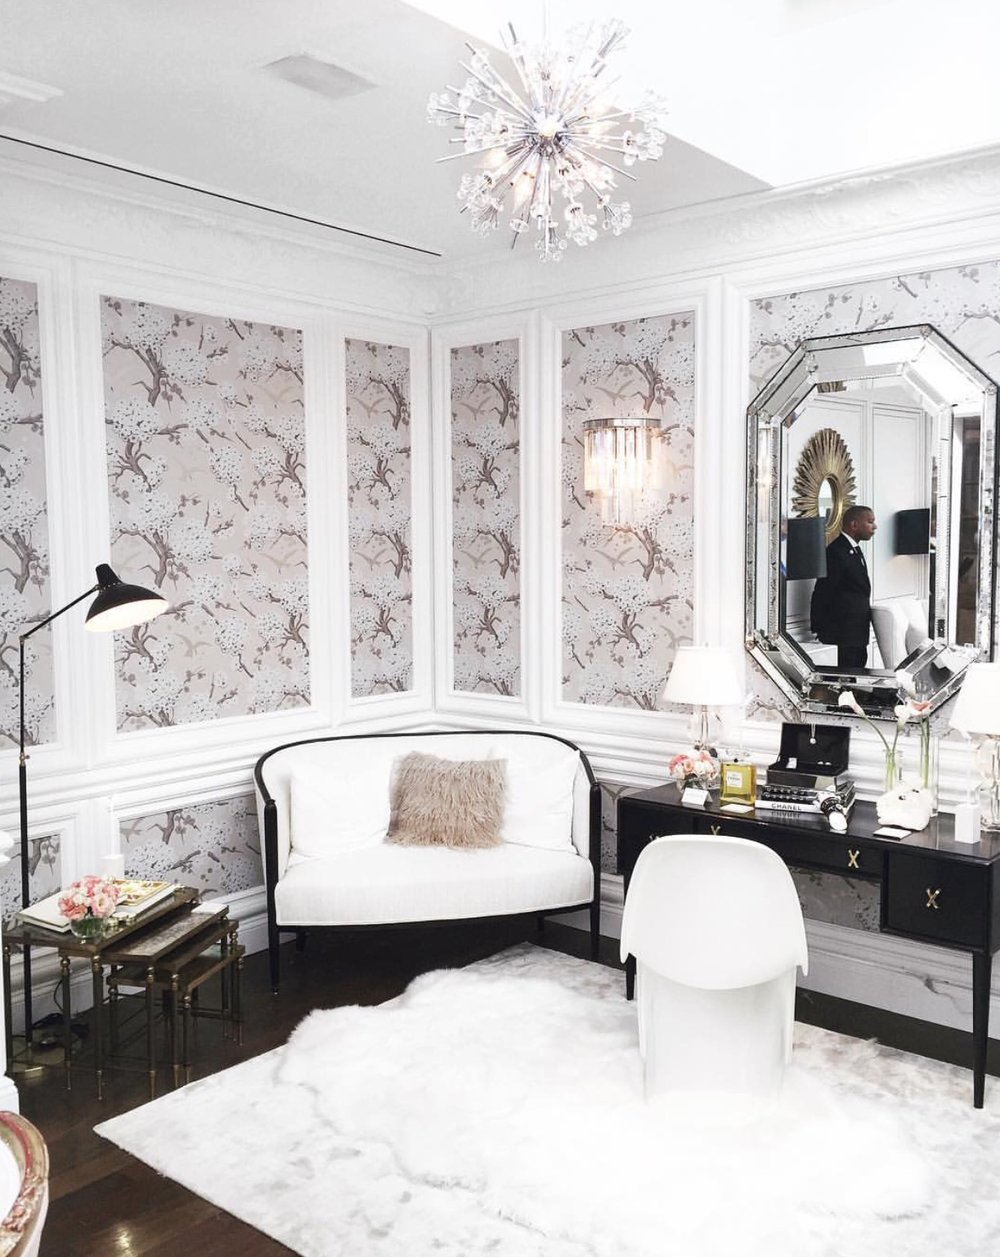 Interior Design Rooms Pictures: 7 Decorating Rules Inspired By Coco Chanel